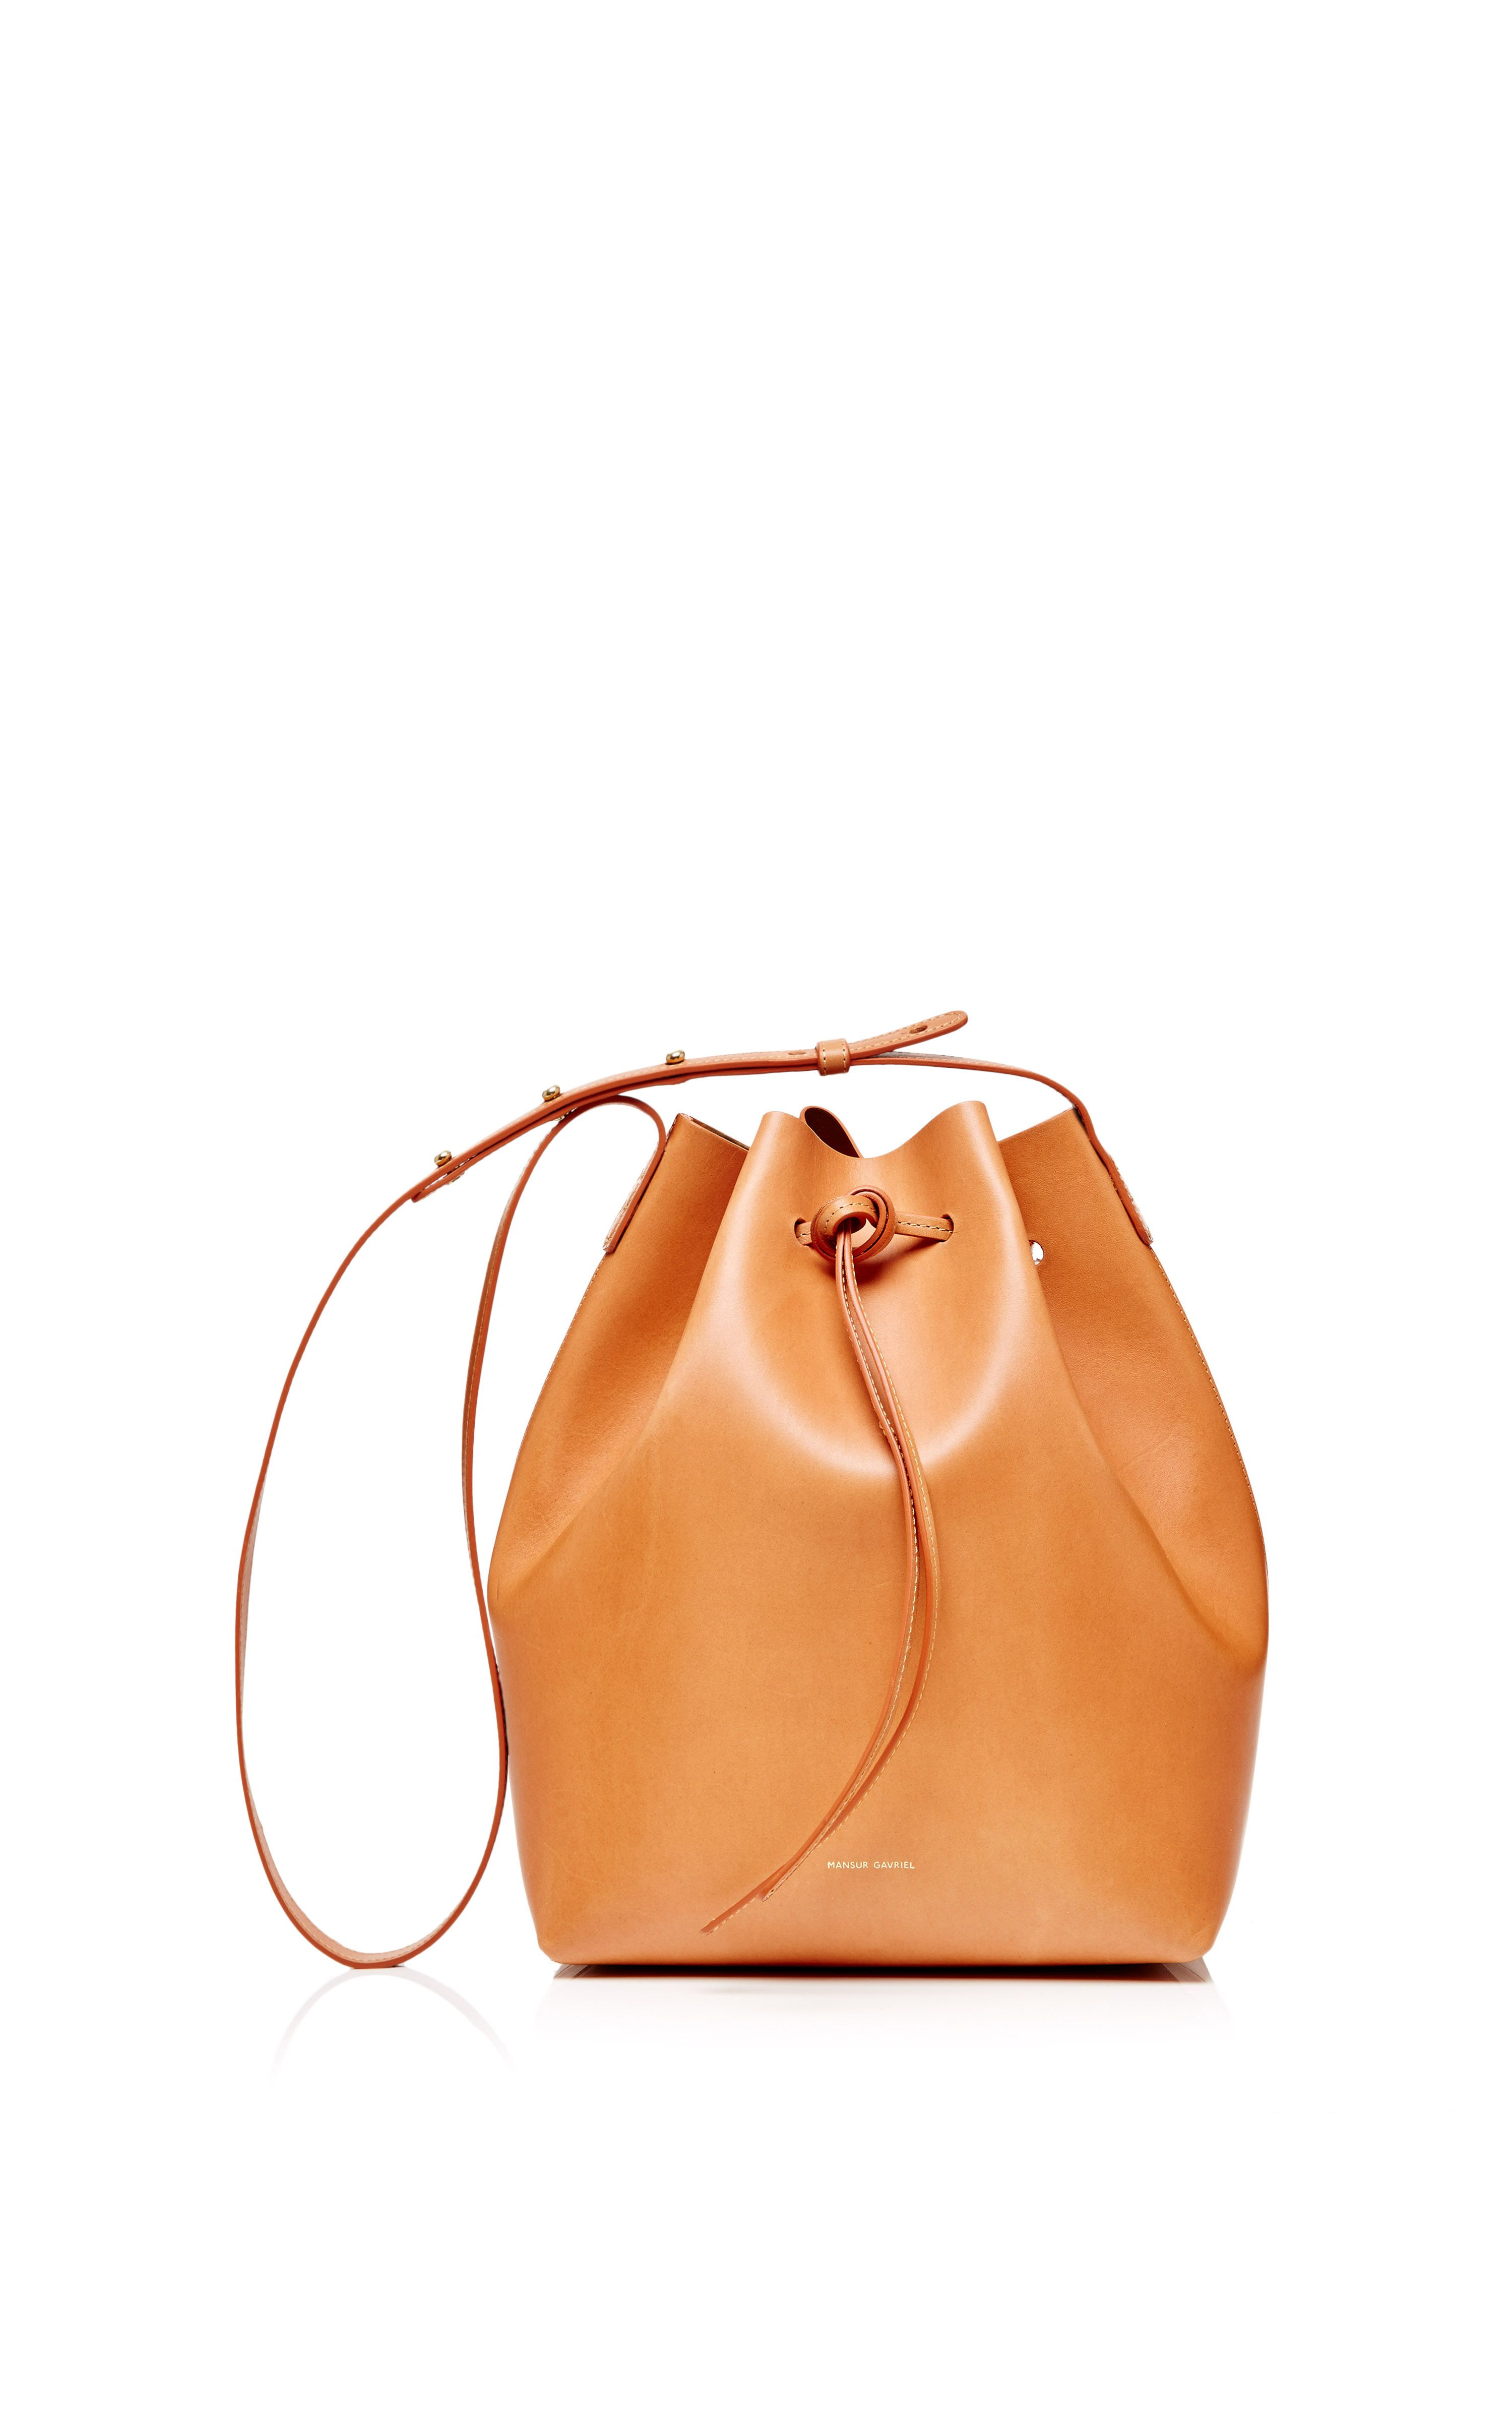 Coated Leather Bucket Bag In Camello With Gold Interior By Mansur Gavriel For Preorder On Moda Operandi